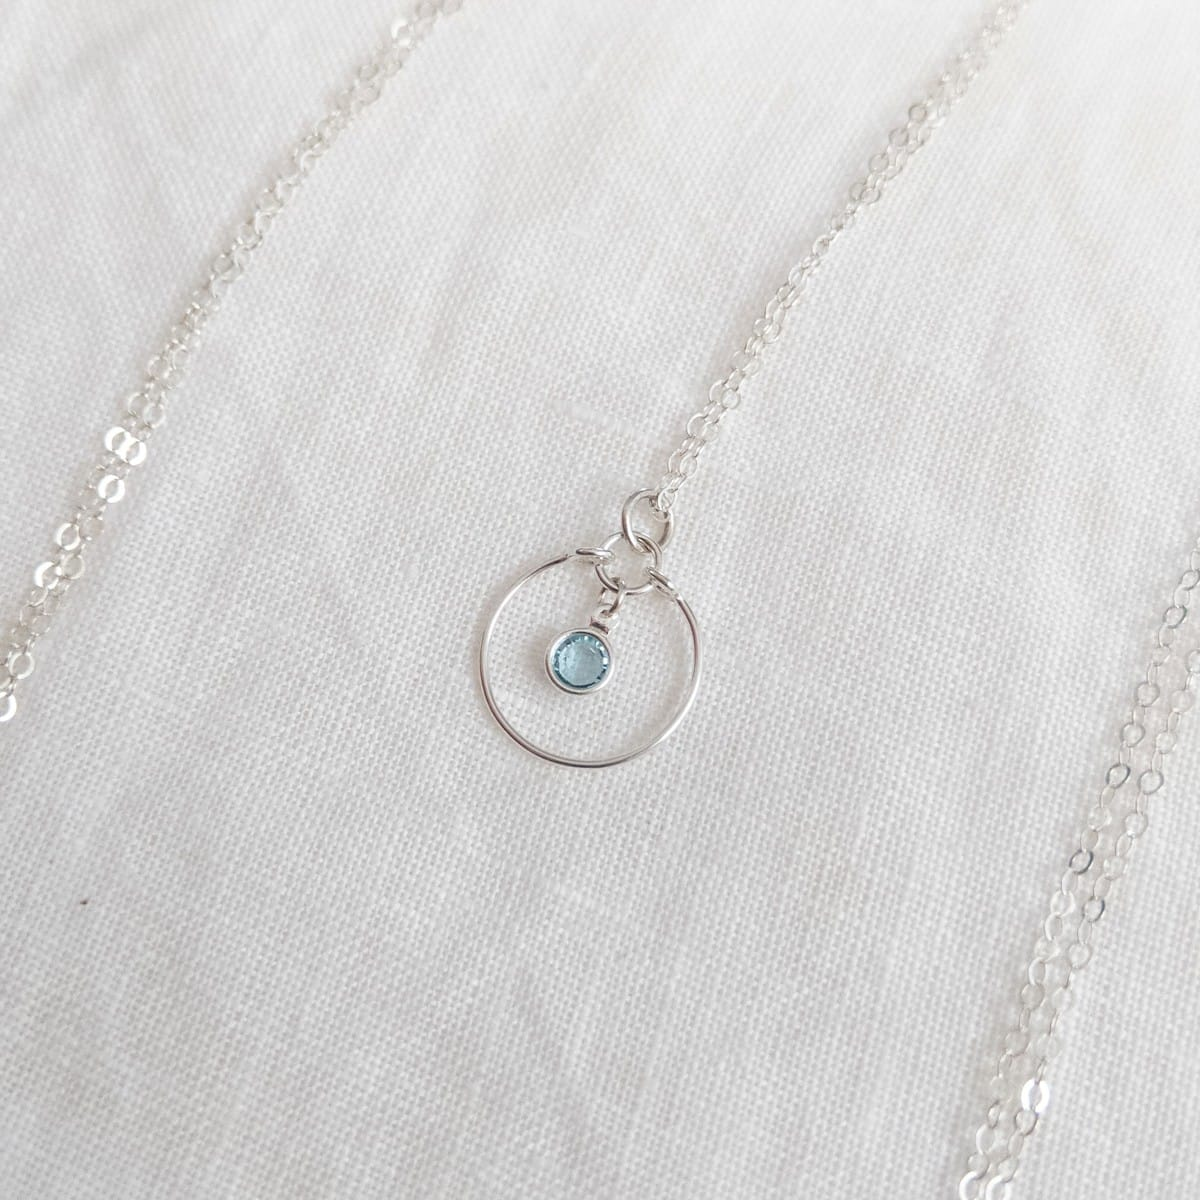 Gem Necklace Aquamarine In Sterling Silver By Little Hangings